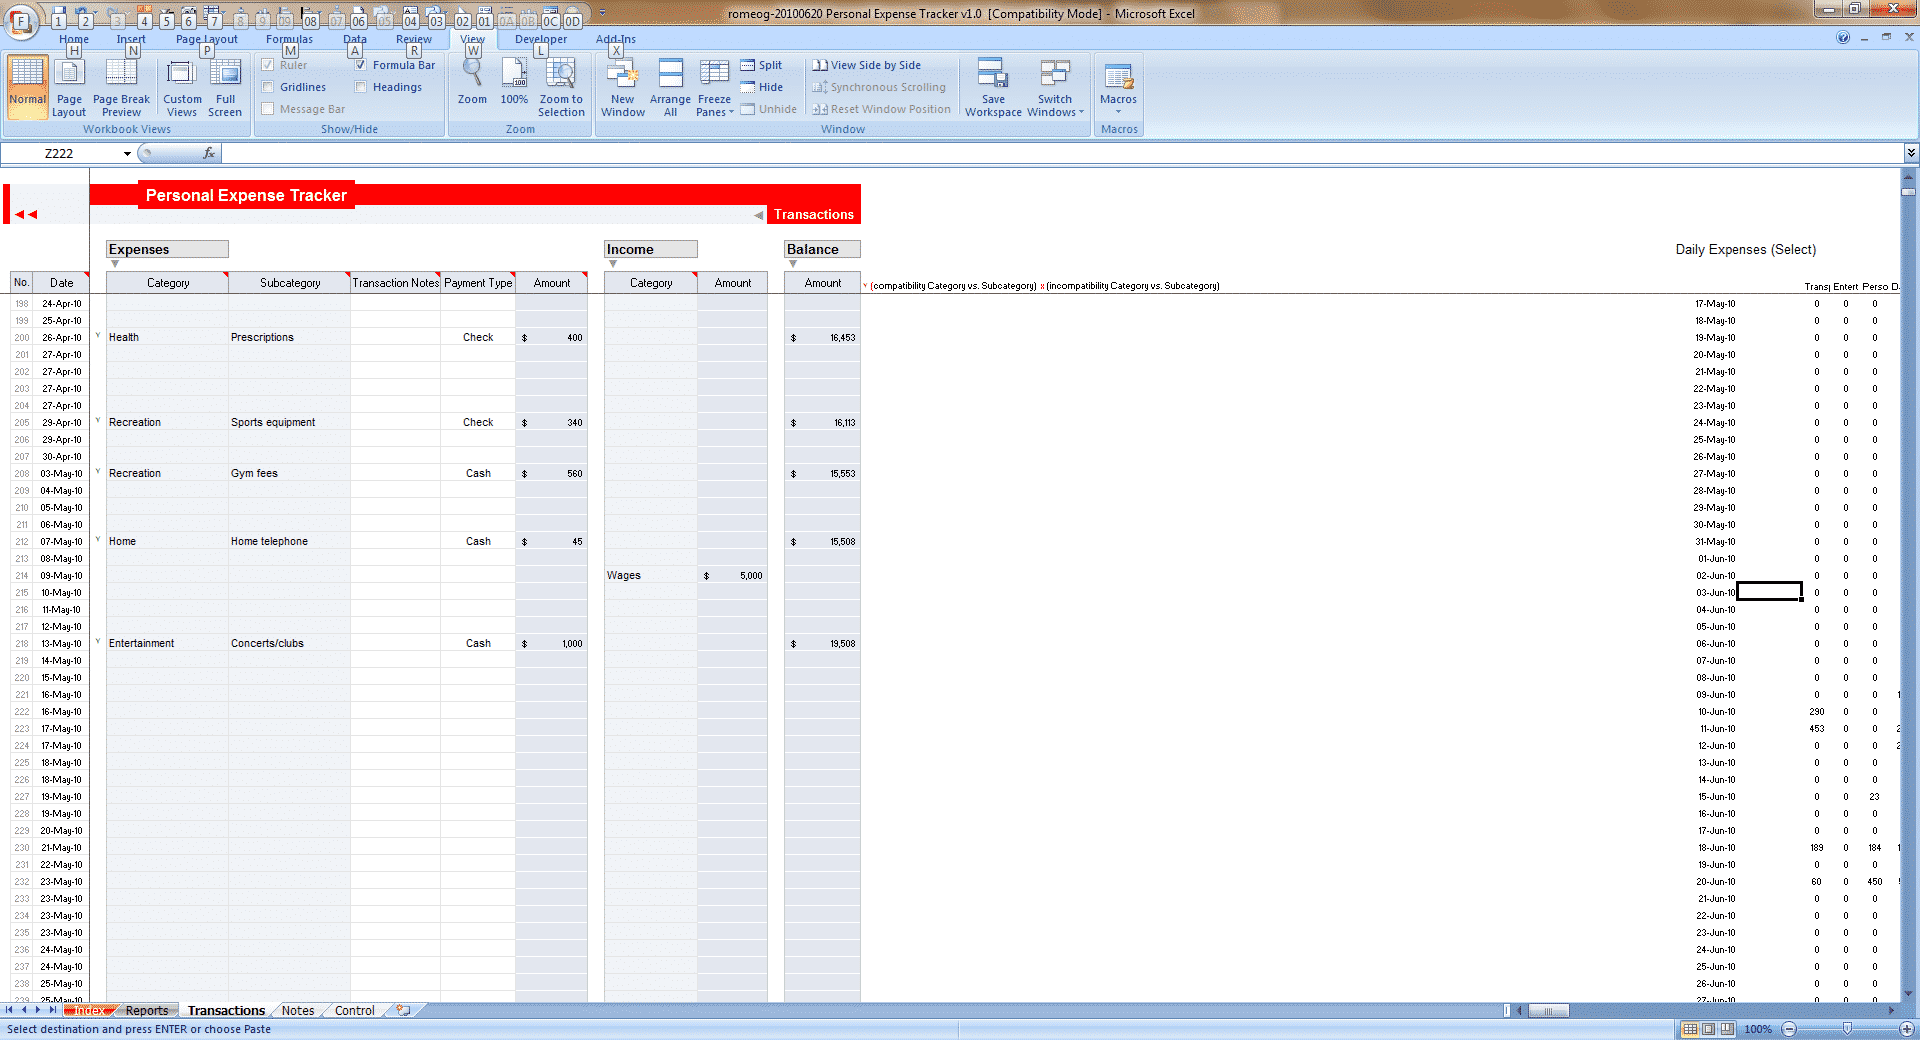 Employee Time Tracking Spreadsheet and Excel Personal Expense Tracker 7 Templates for Tracking